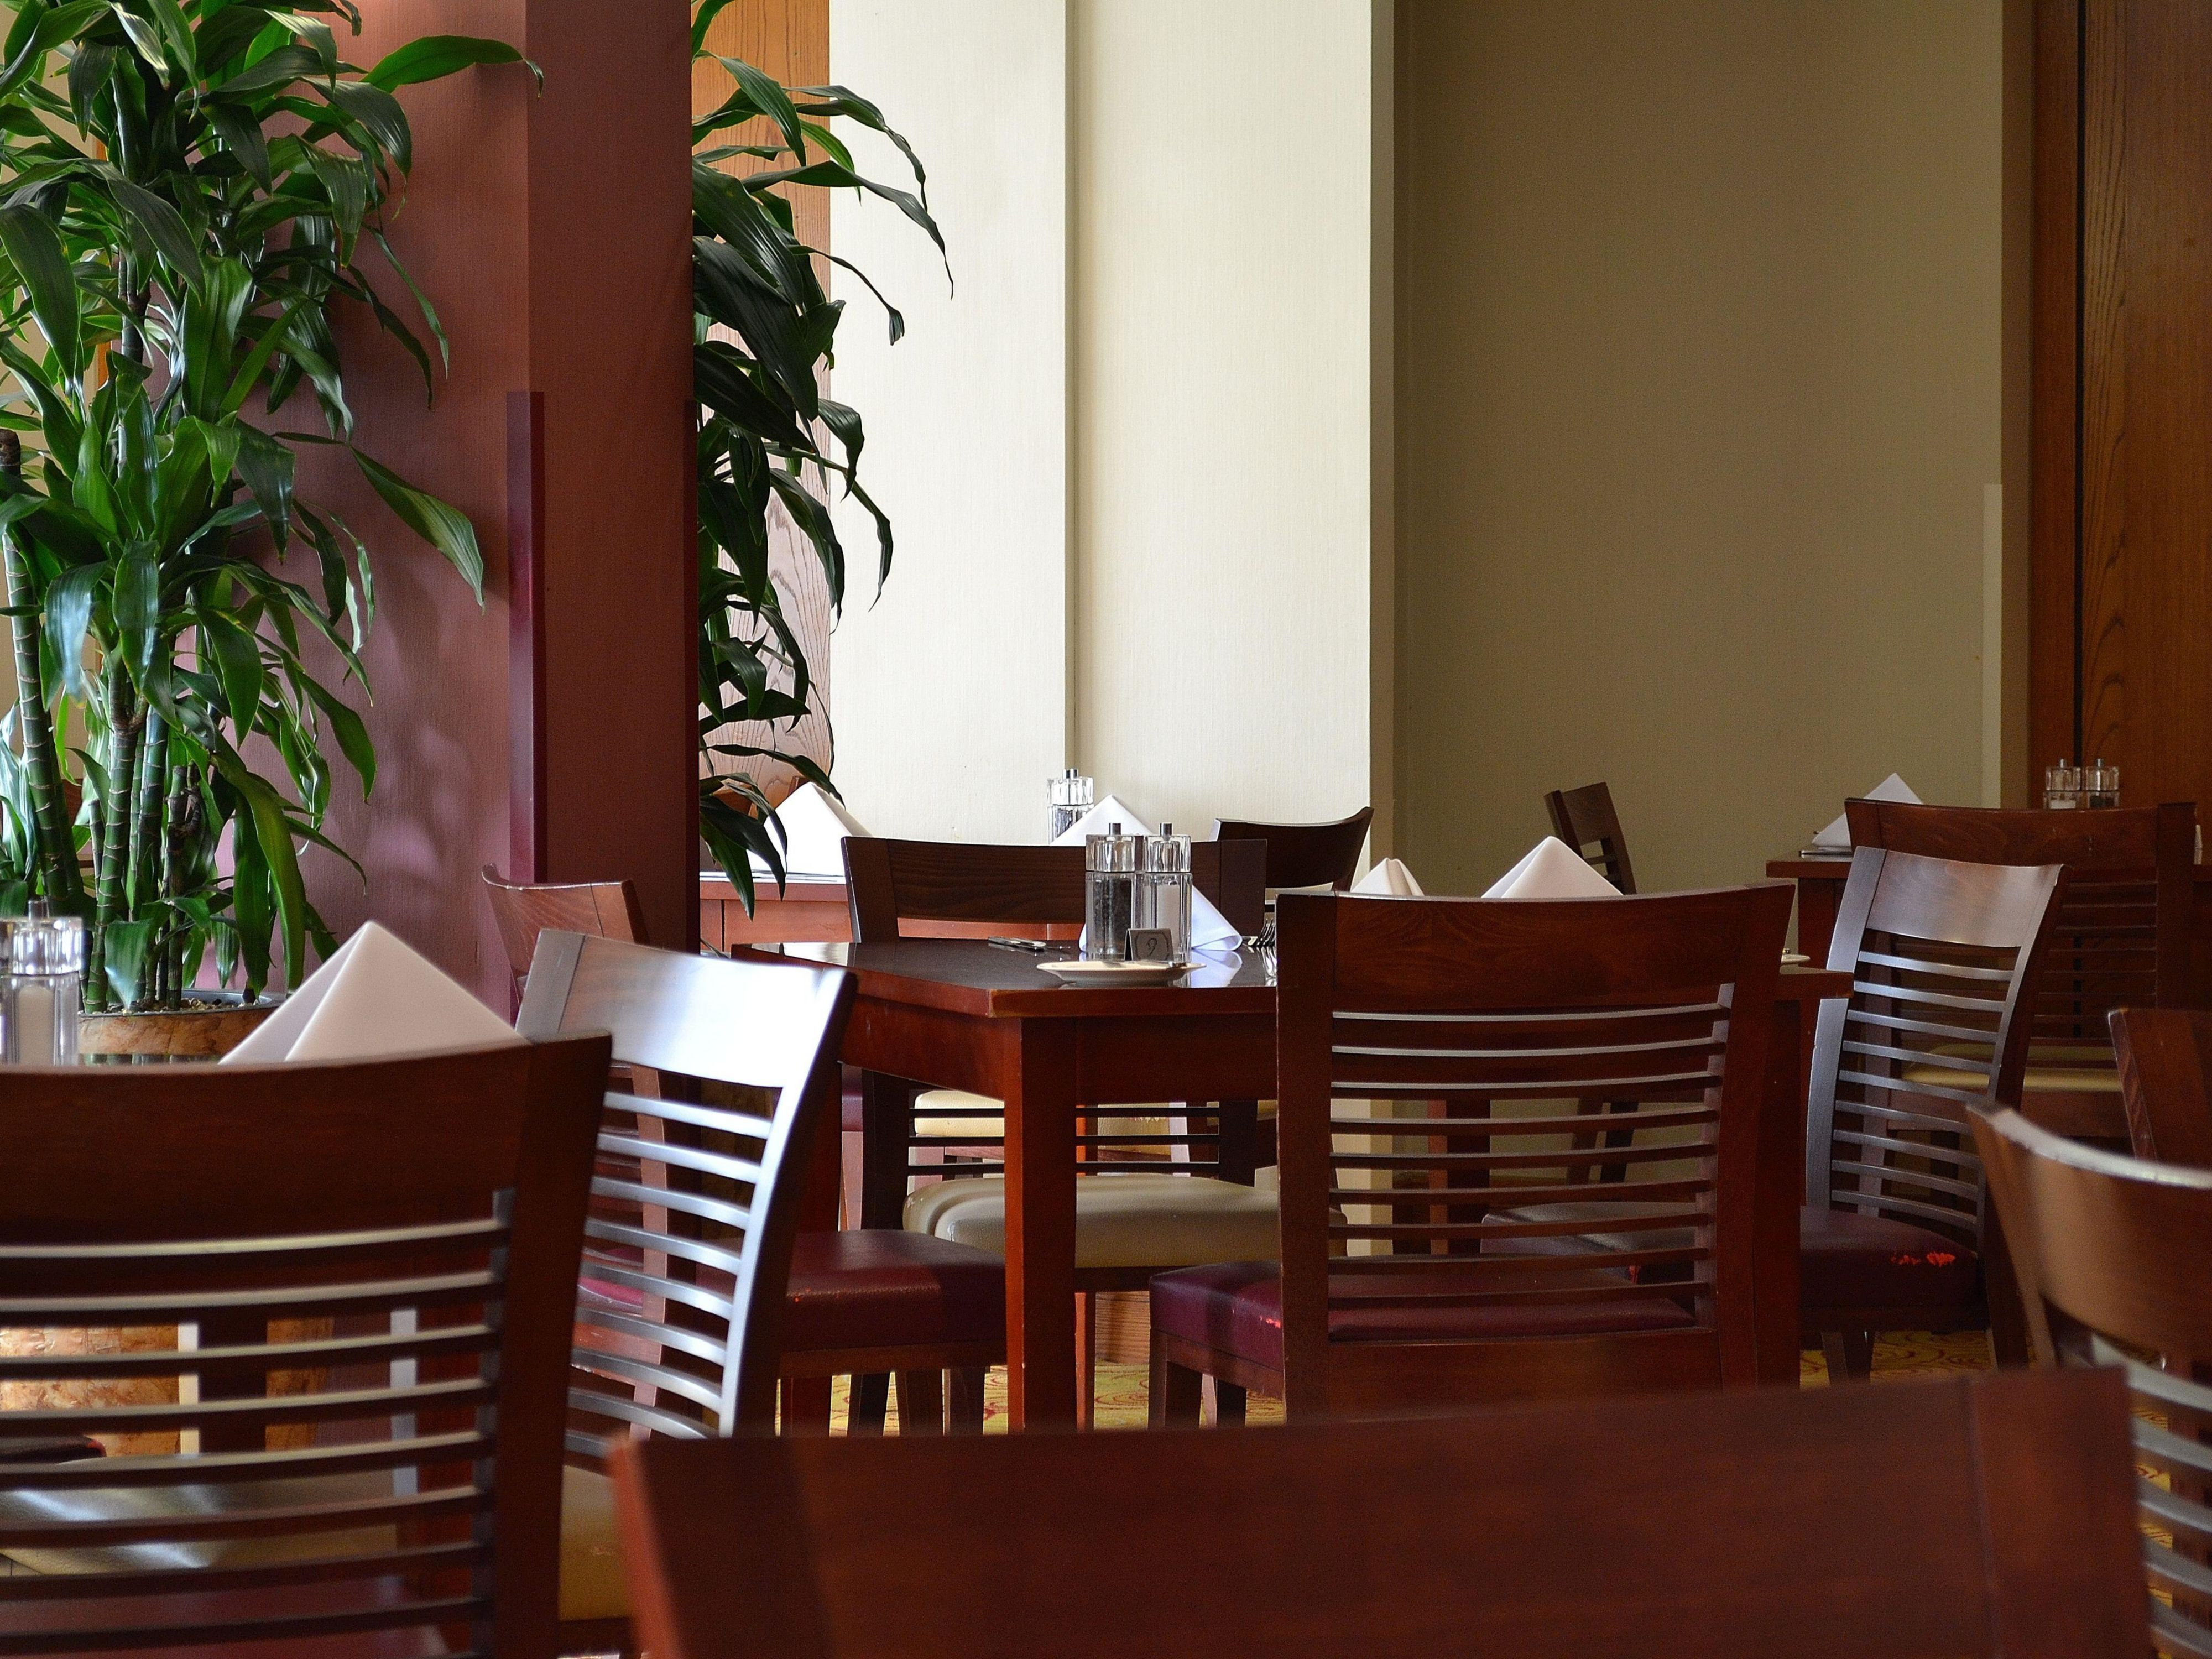 Plenty of choices where to sit and enjoy your nights dining.